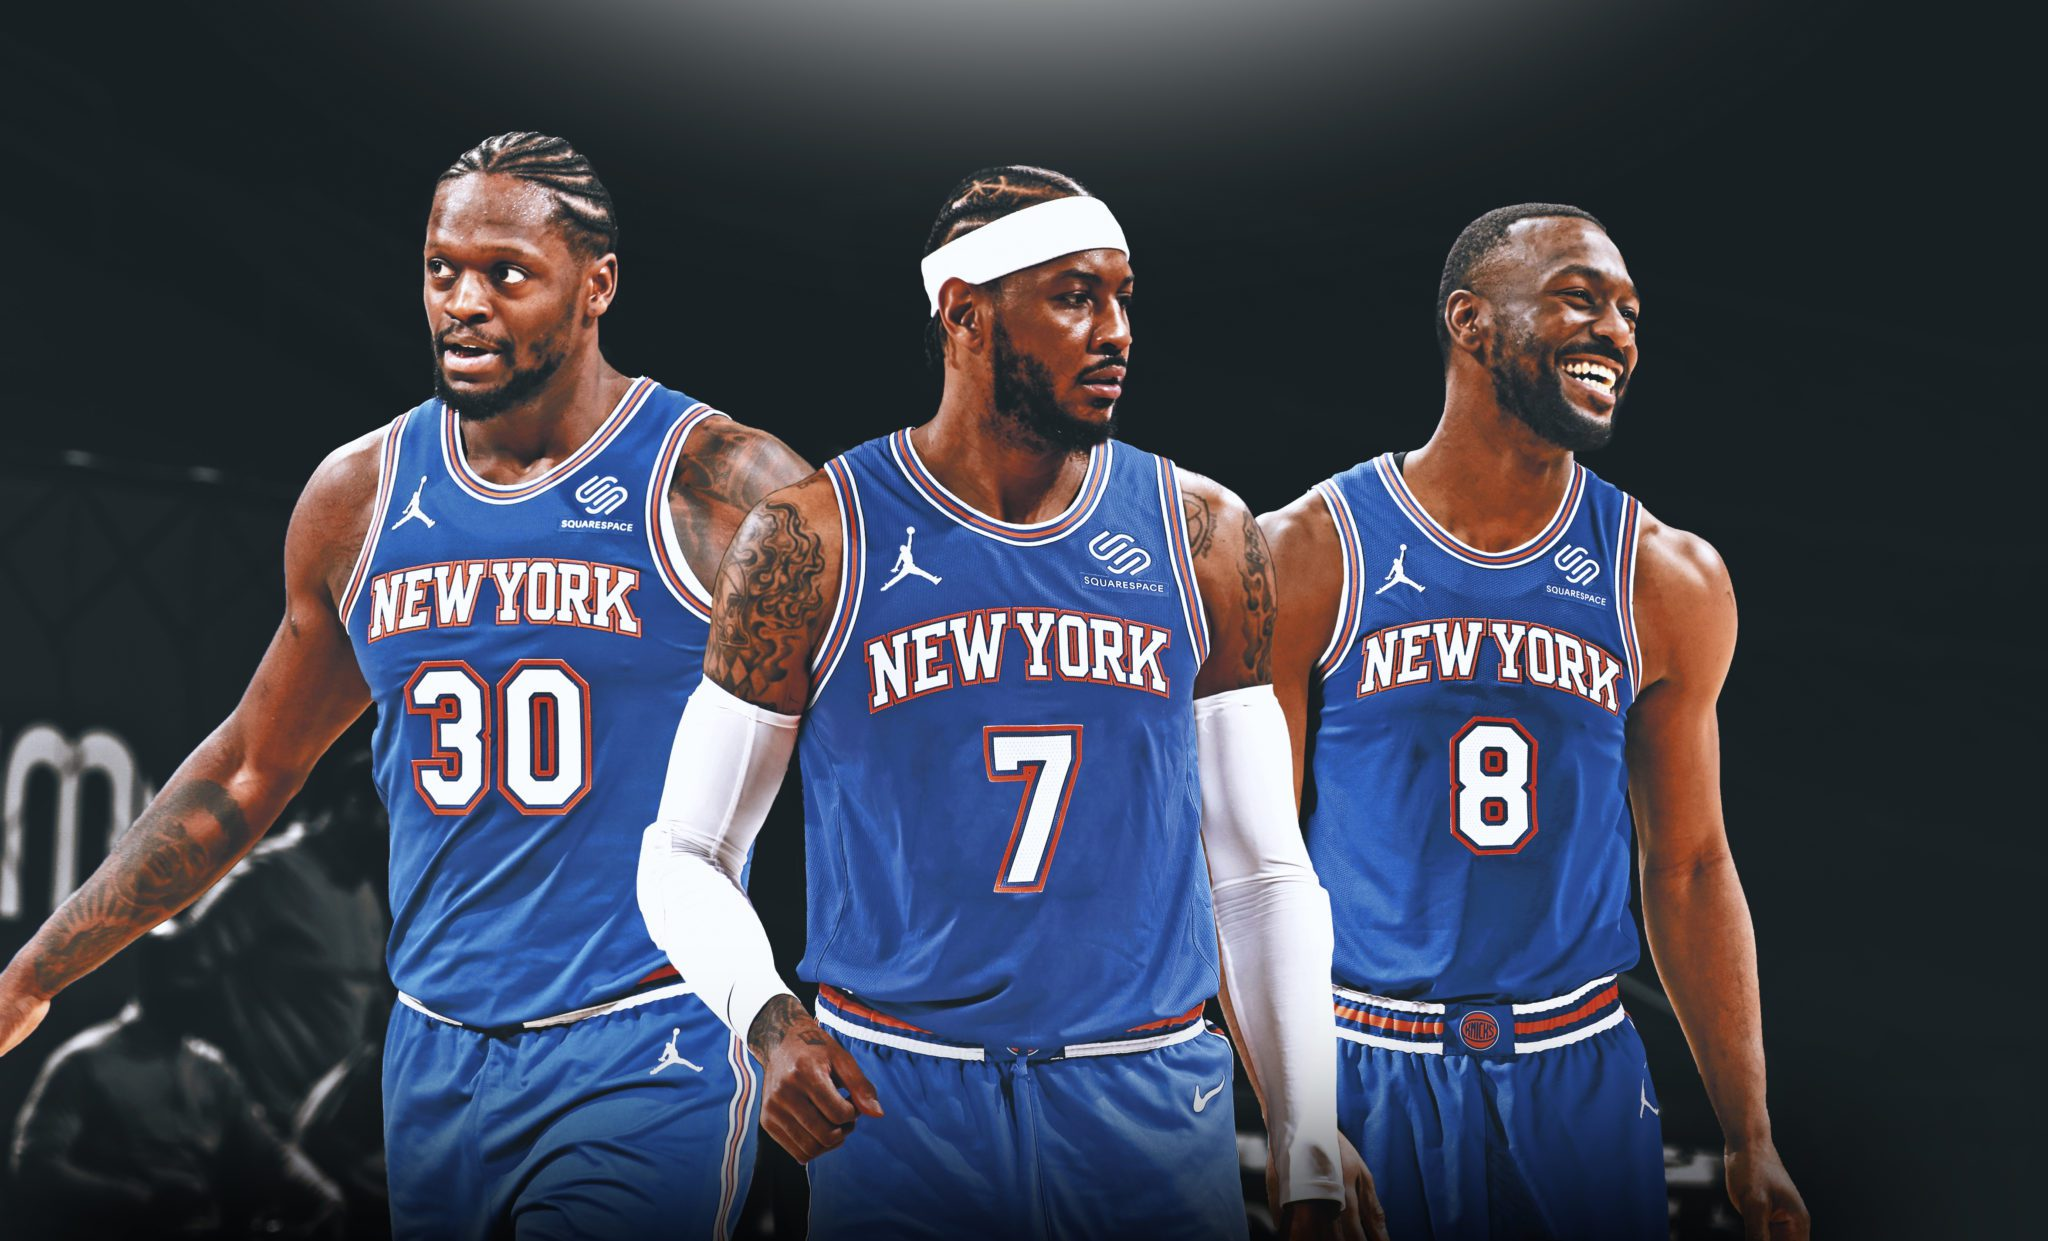 Carmelo Anthony Expected to Sign With the Knicks. Then Everything Changed.